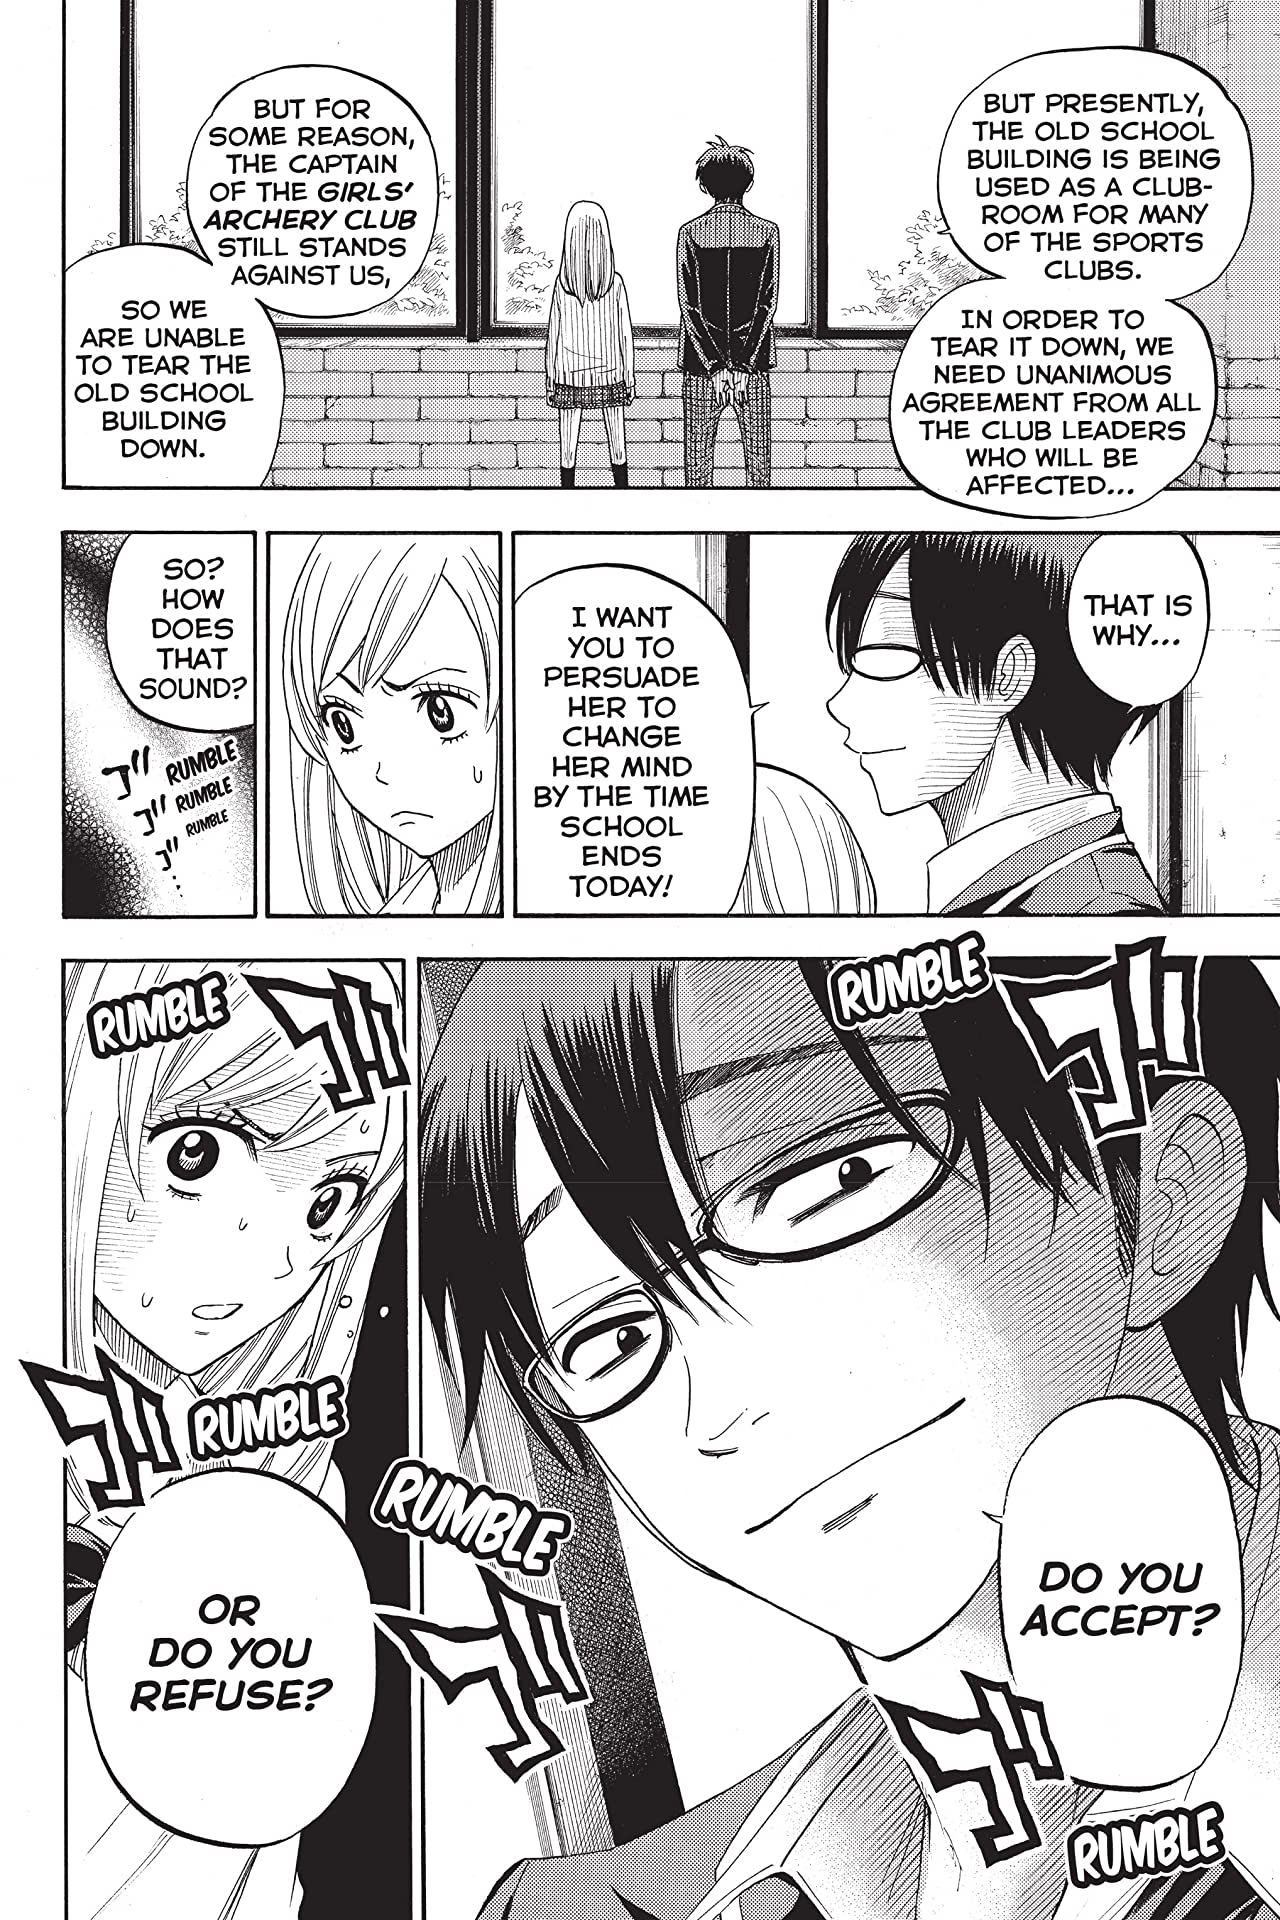 Yamada-kun and the Seven Witches #12